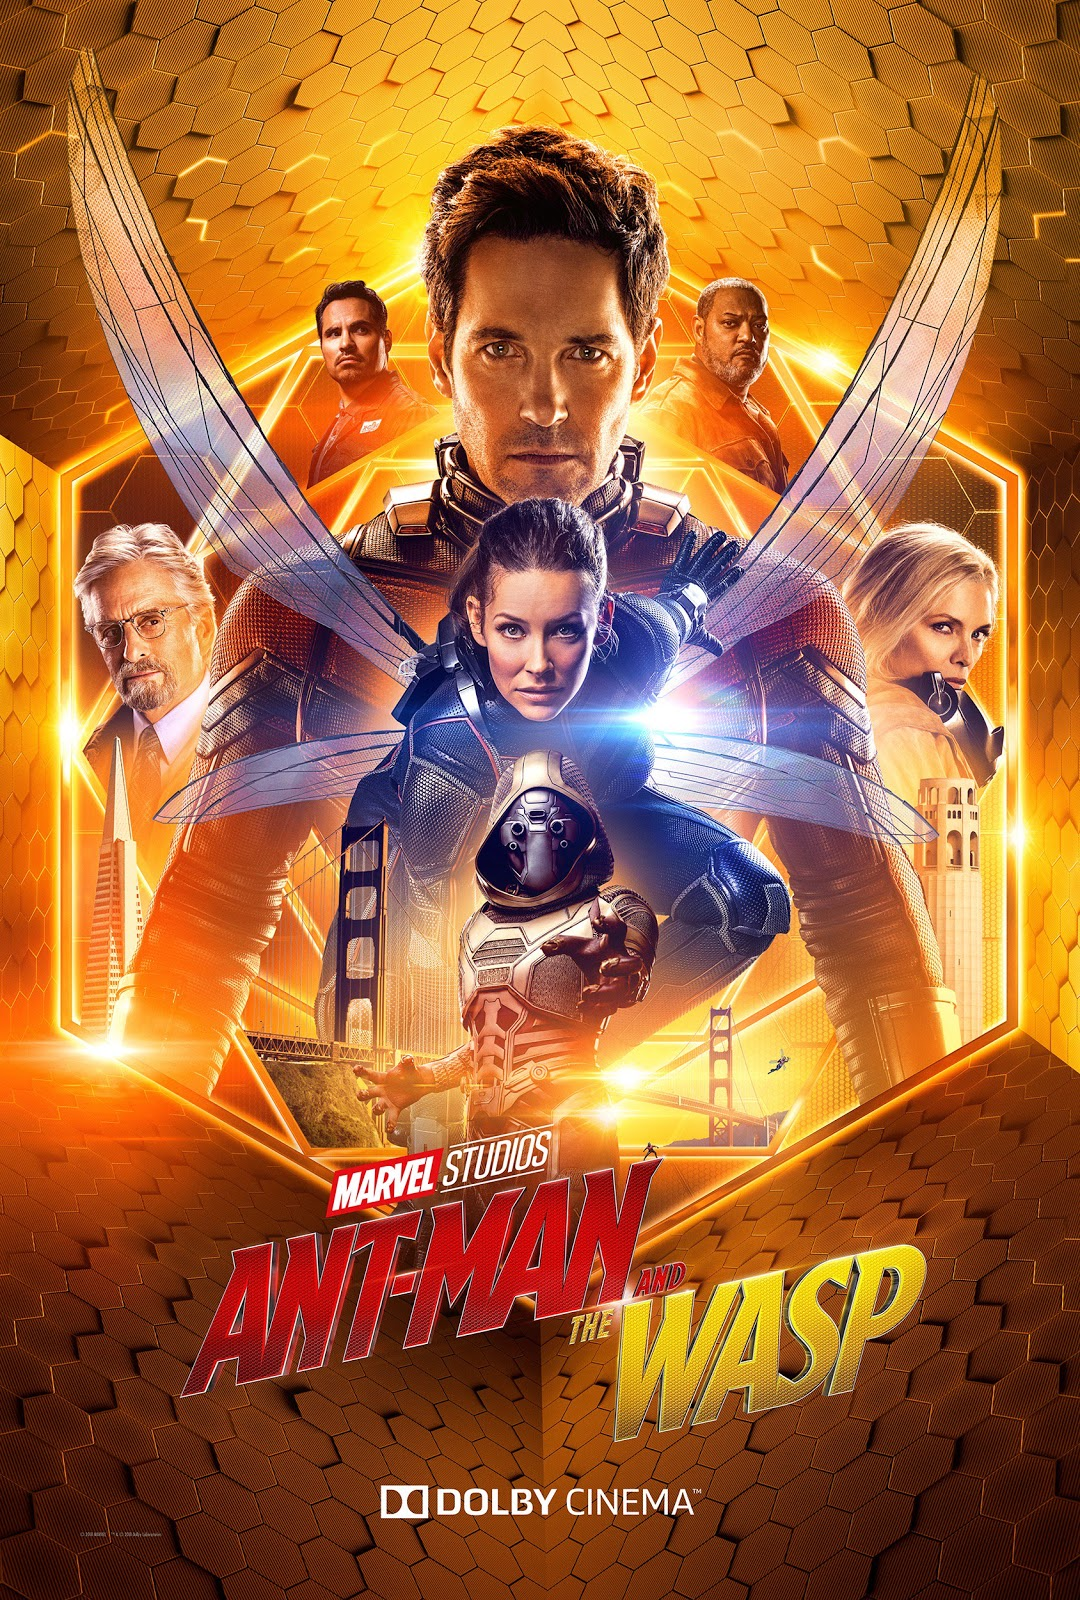 Marvel's Ant-Man and the Wasp Dolby Cinema poster